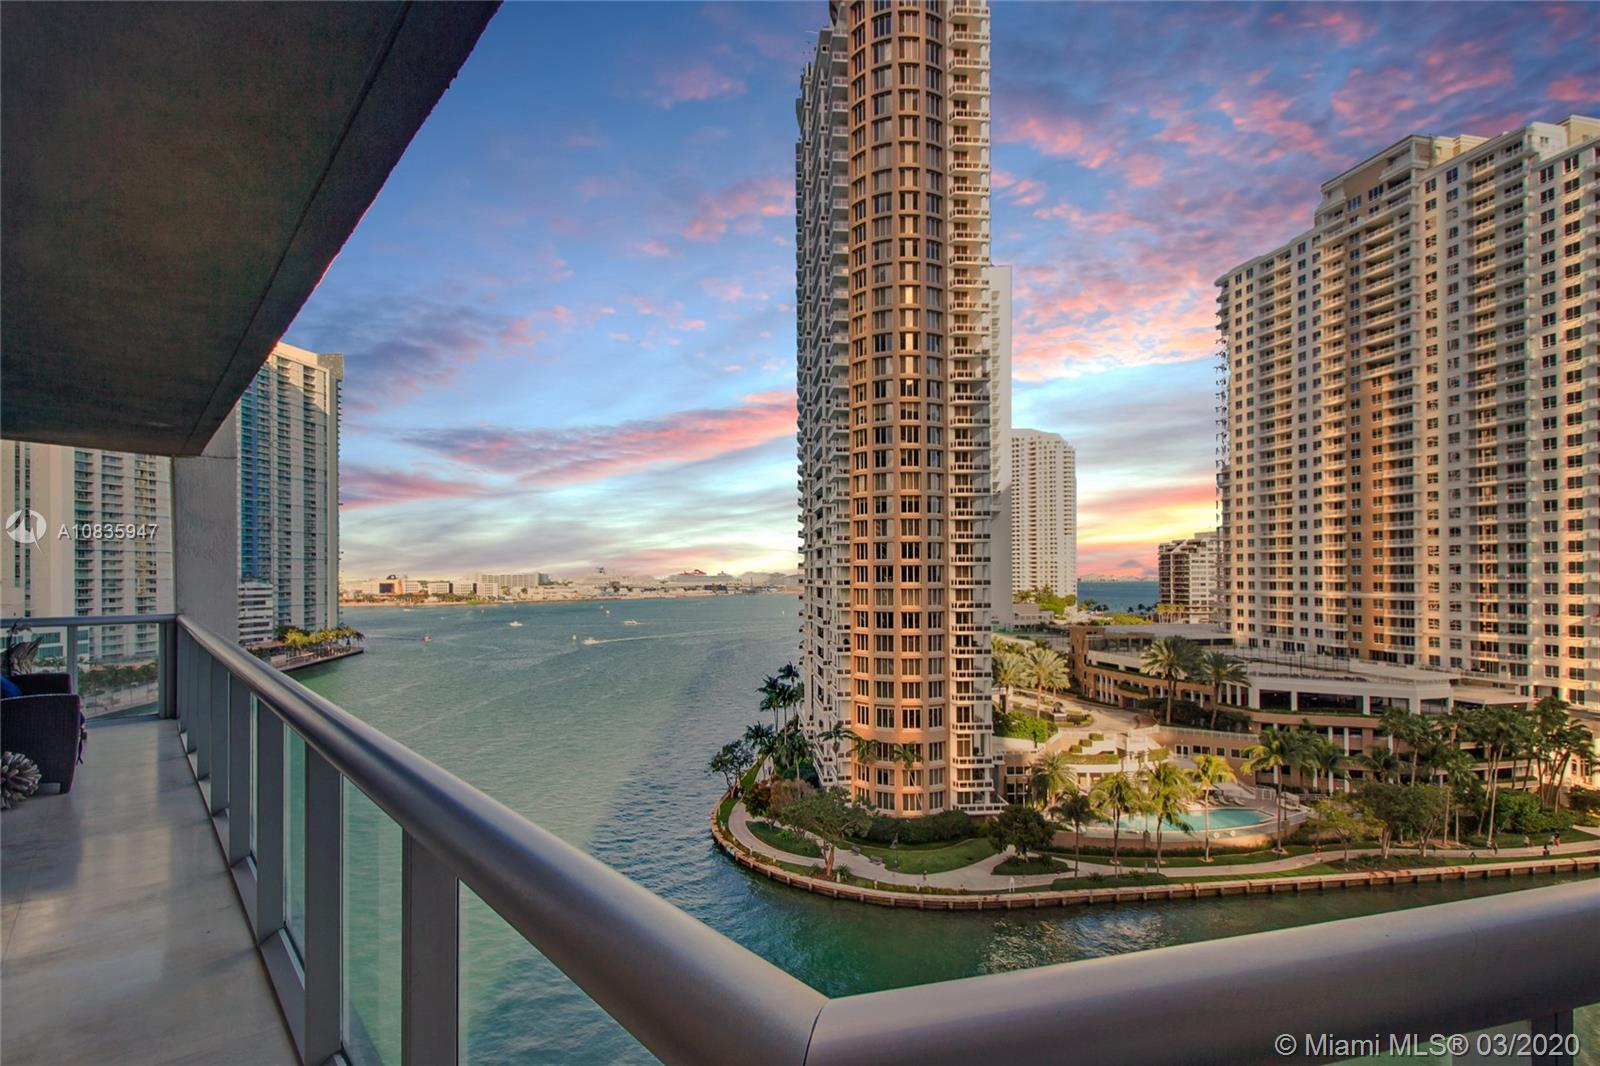 COMPLETELY UPGRADED 3 BED CORNER BAY UNIT AT ICON BRICKELL. UNIT SITS DIRECTLY OVER THE MIAMI RIVER GIVING IT A UNIQUE FEEL WITH DIRECT BAY AND RIVER VIEWS OF BRICKELL. UNIT HAS BEEN COMPLETELY UPGRADED WITH HIGH END FINISHES SUCH AS MARBLE FLOORING, DROP CEILINGS, BUILT IN BAR & CUSTOM CLOSETS. THIS IS A MUST SEE.